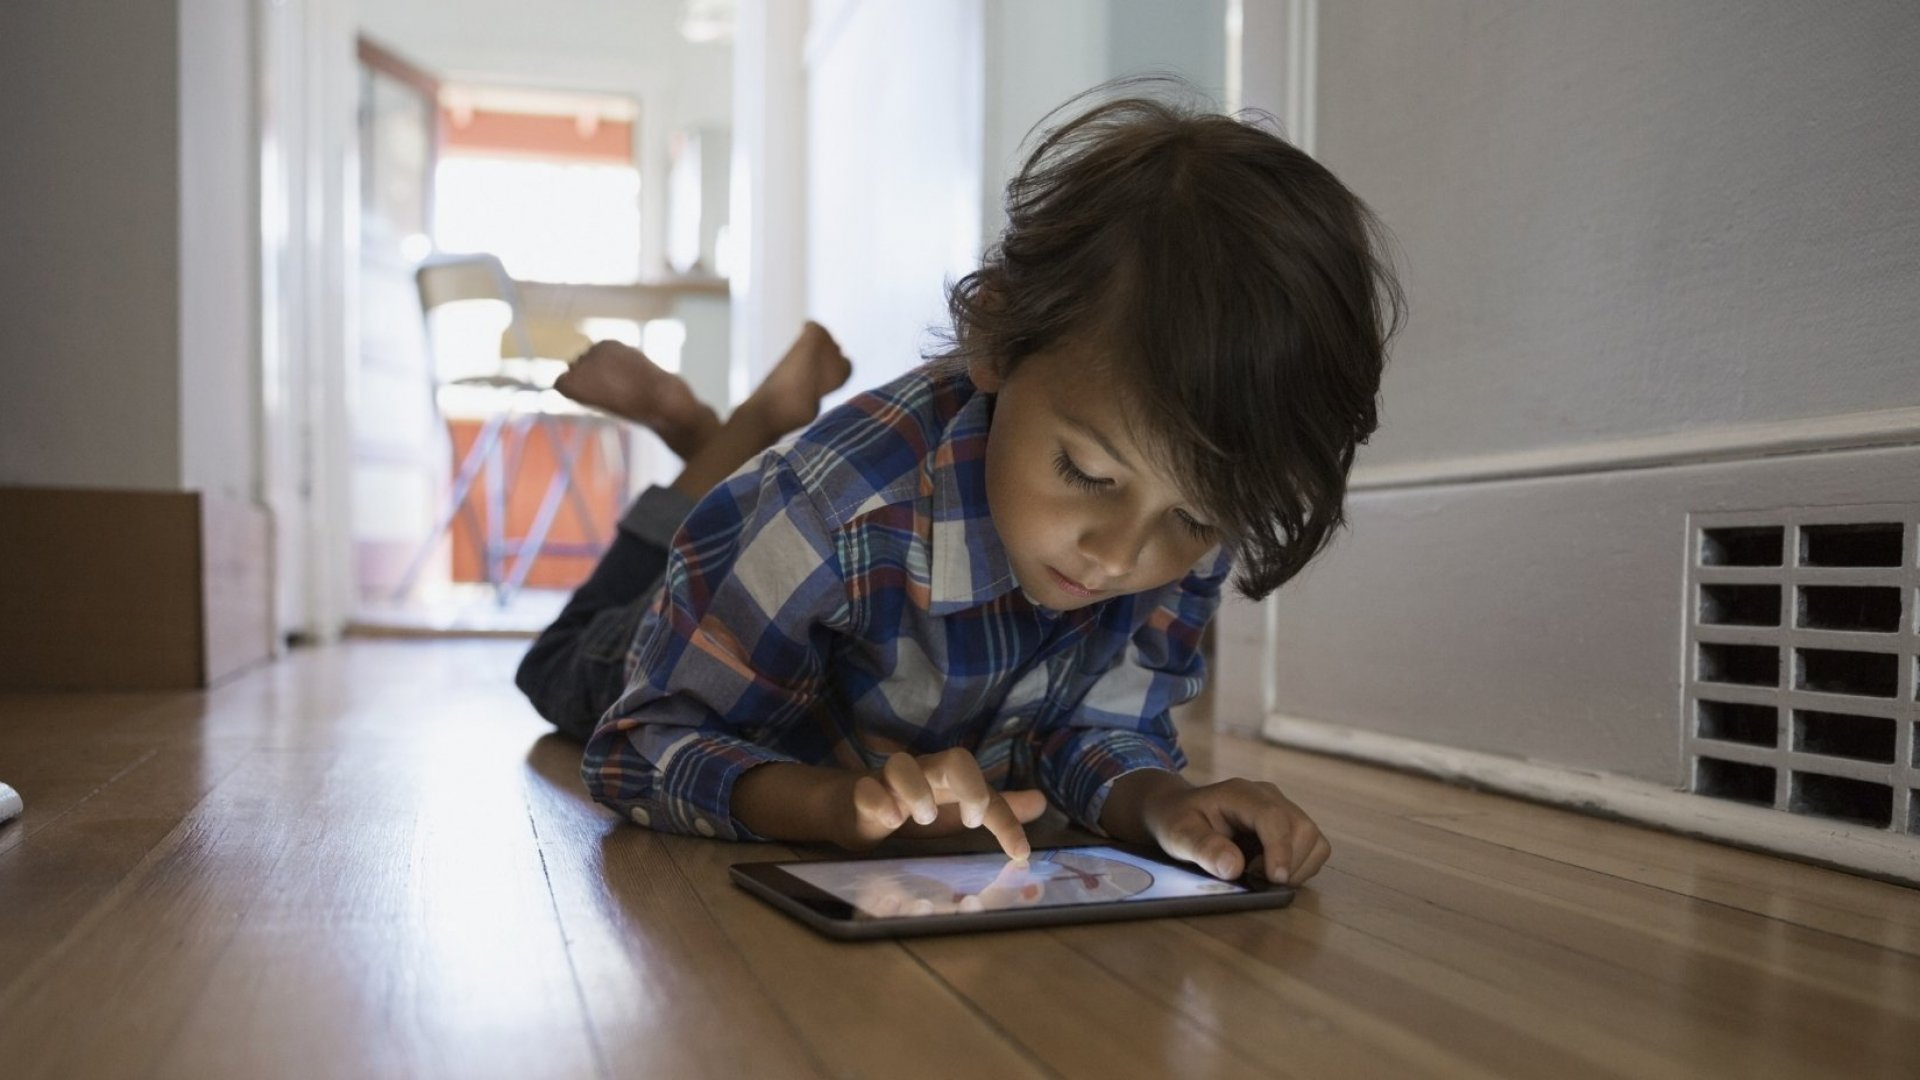 5 Principles to Raise Successful Kids in a World Full of Screens